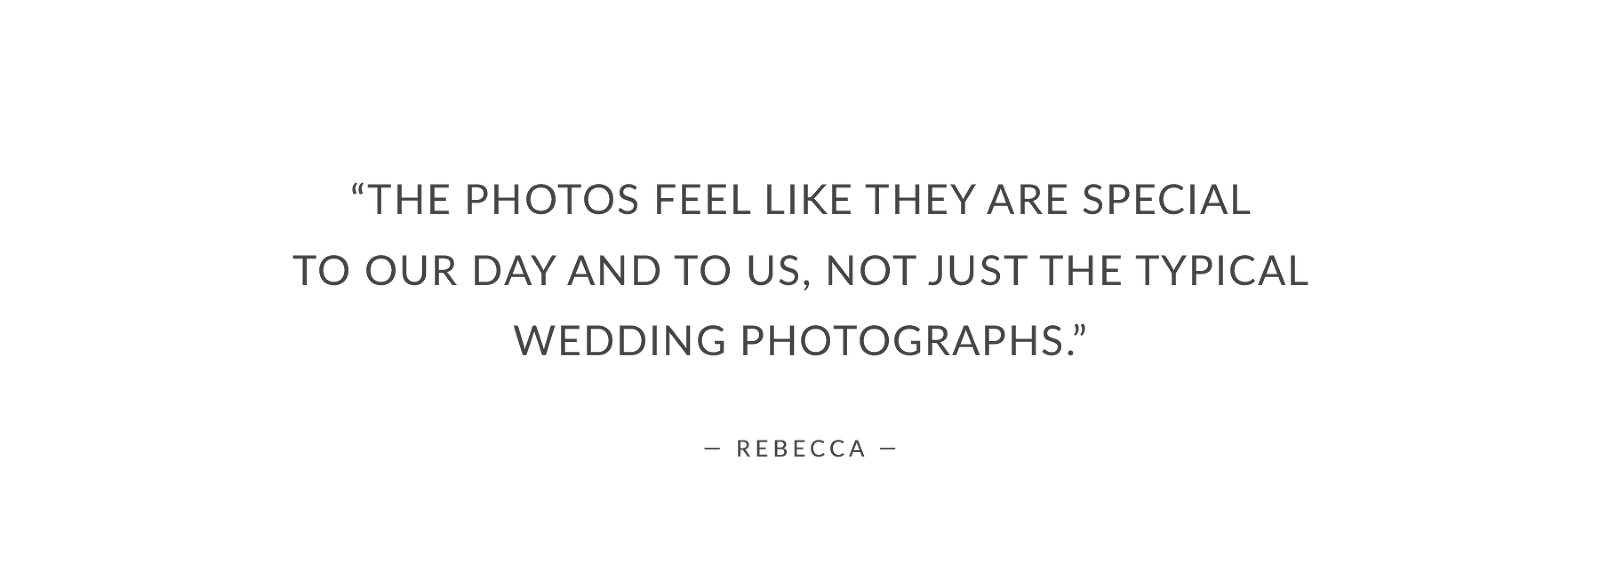 """The photos feel like they are special to our day and to us, not just the typical wedding photographs."""